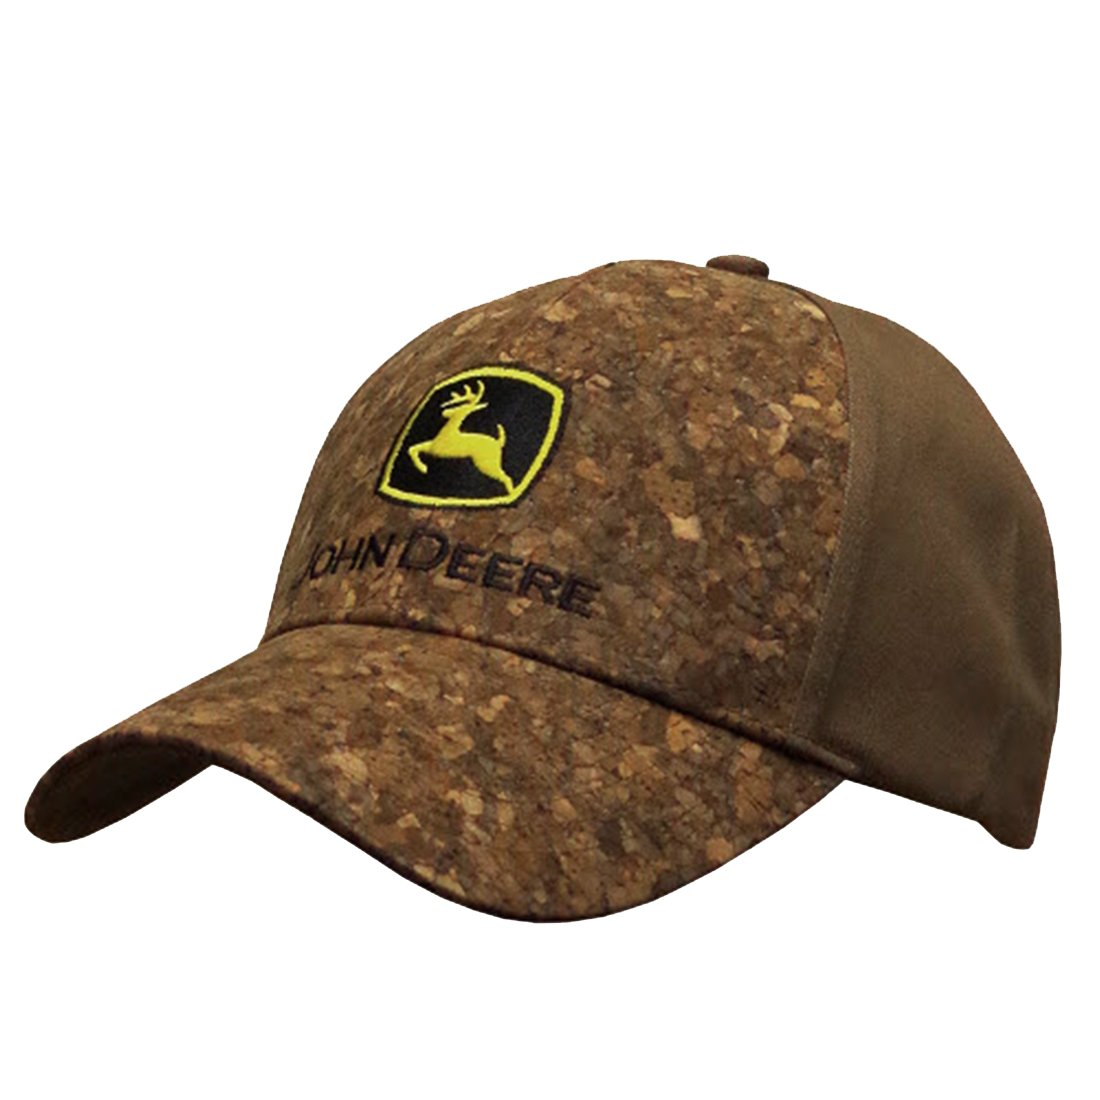 7f6faf8046c John Deere Bark Front Hat with Industrial Logo Brown at Amazon Men s  Clothing store